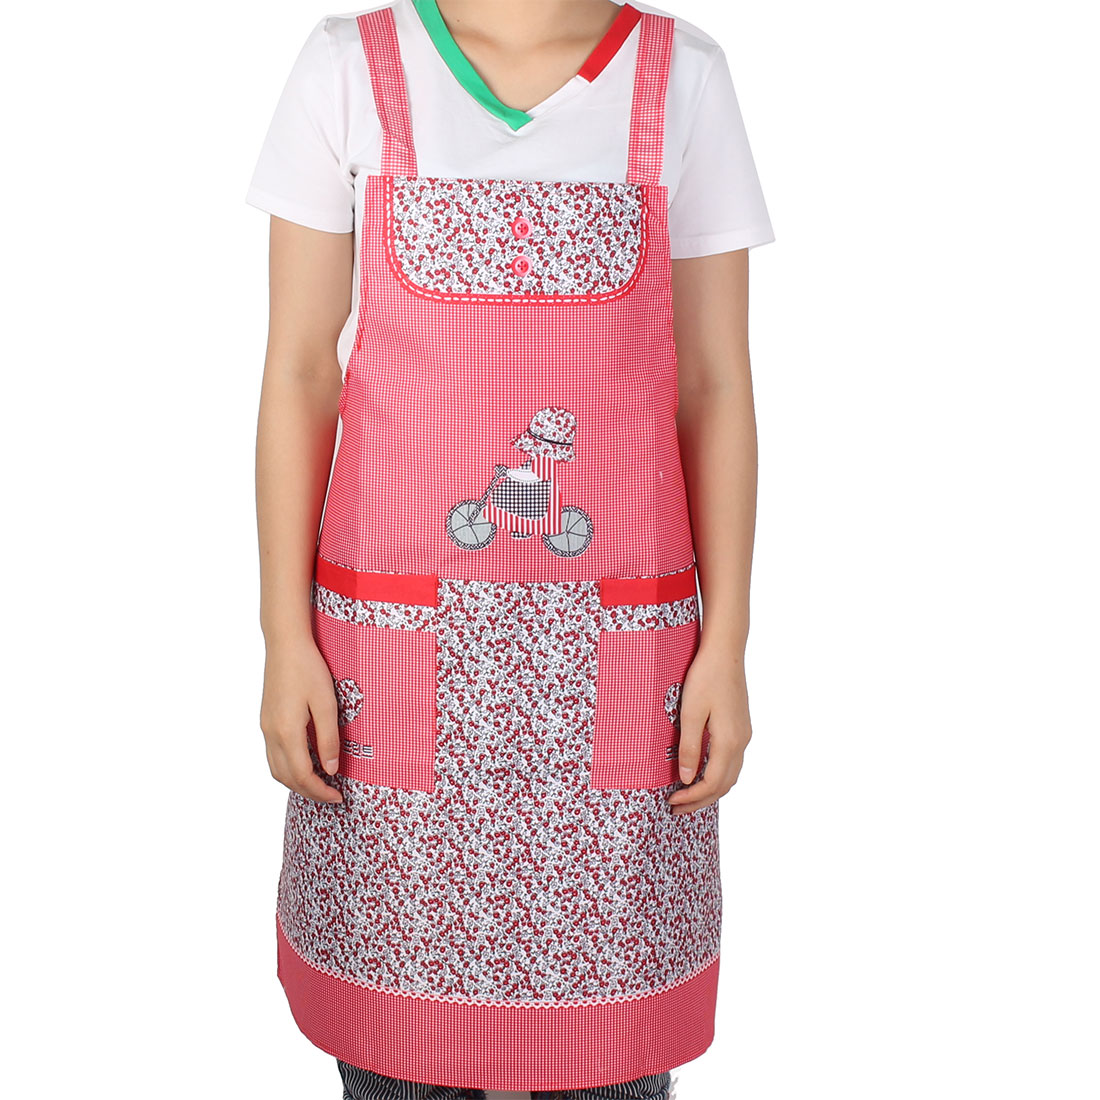 Home Kitchen Restaurant Bib Cooking Baking Pocket Apron For Woman